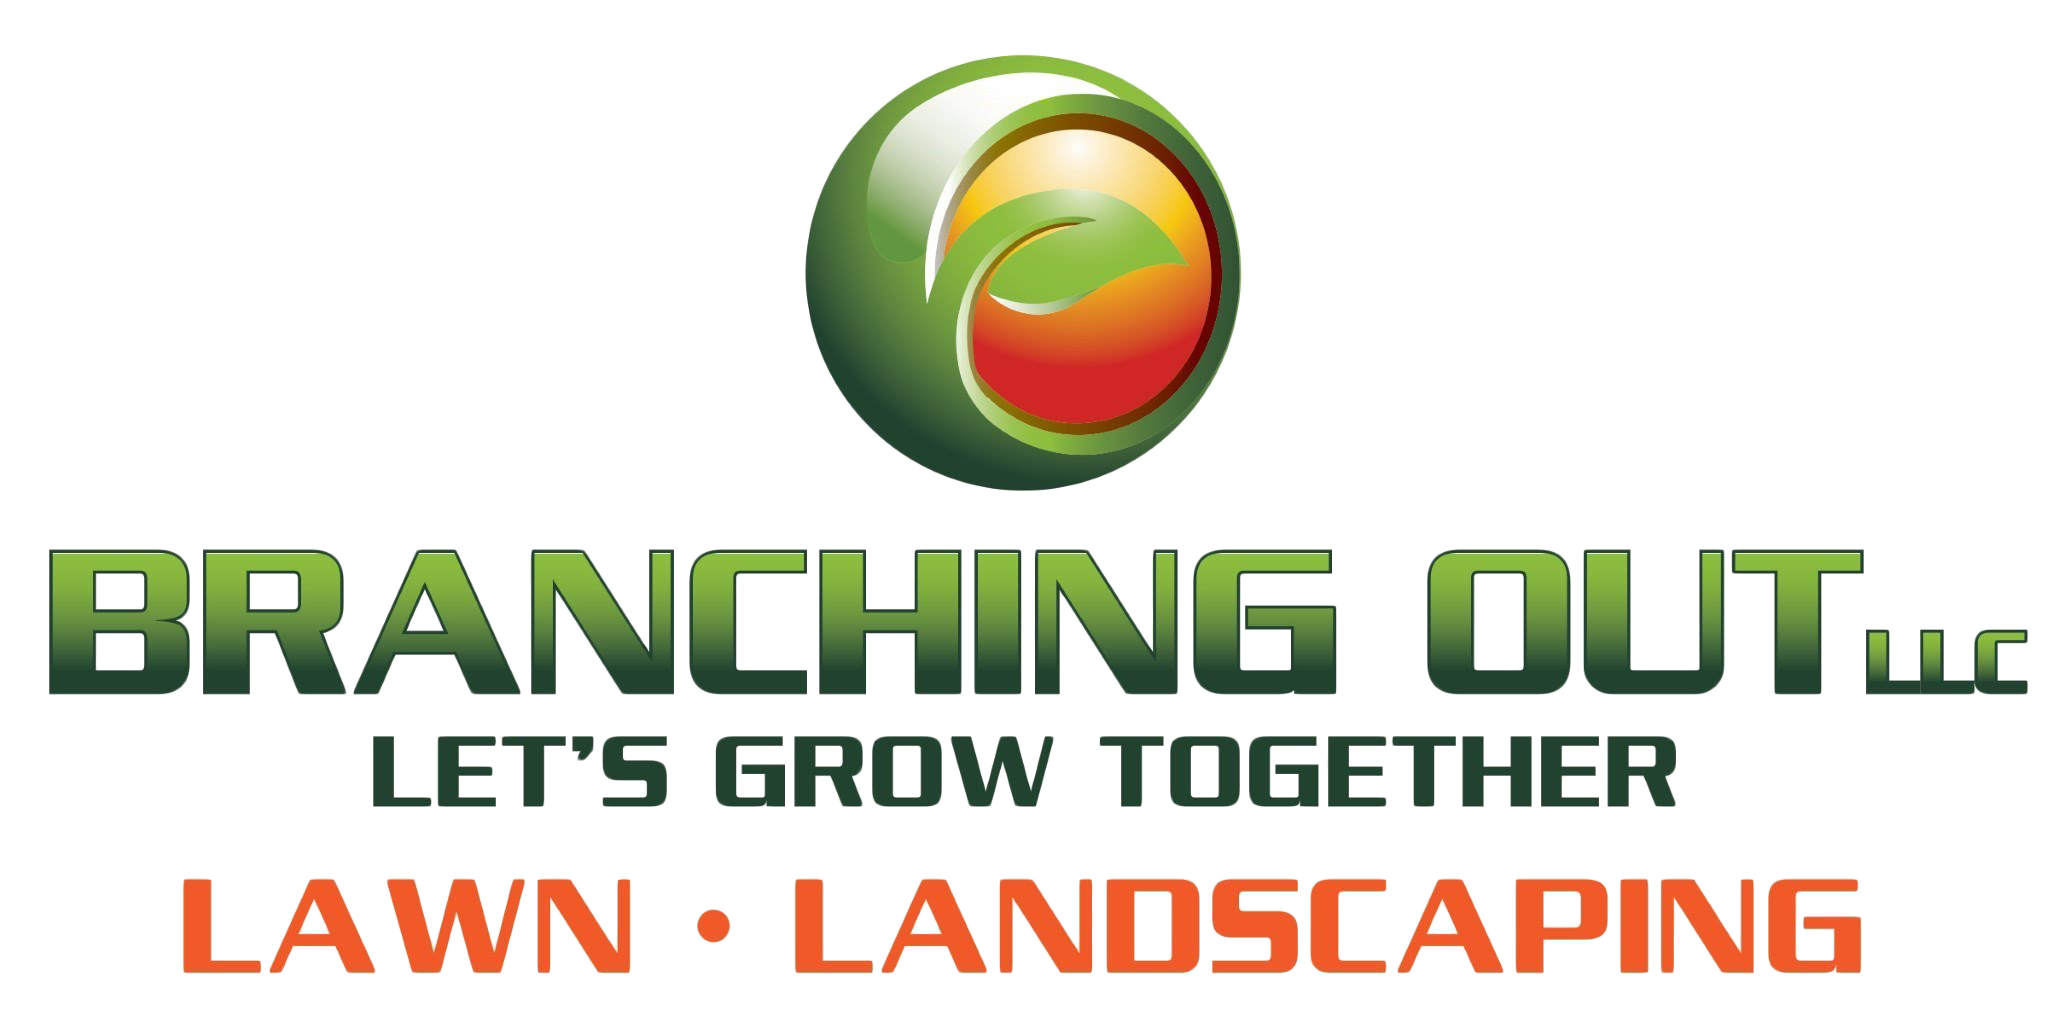 Branching Out, LLC